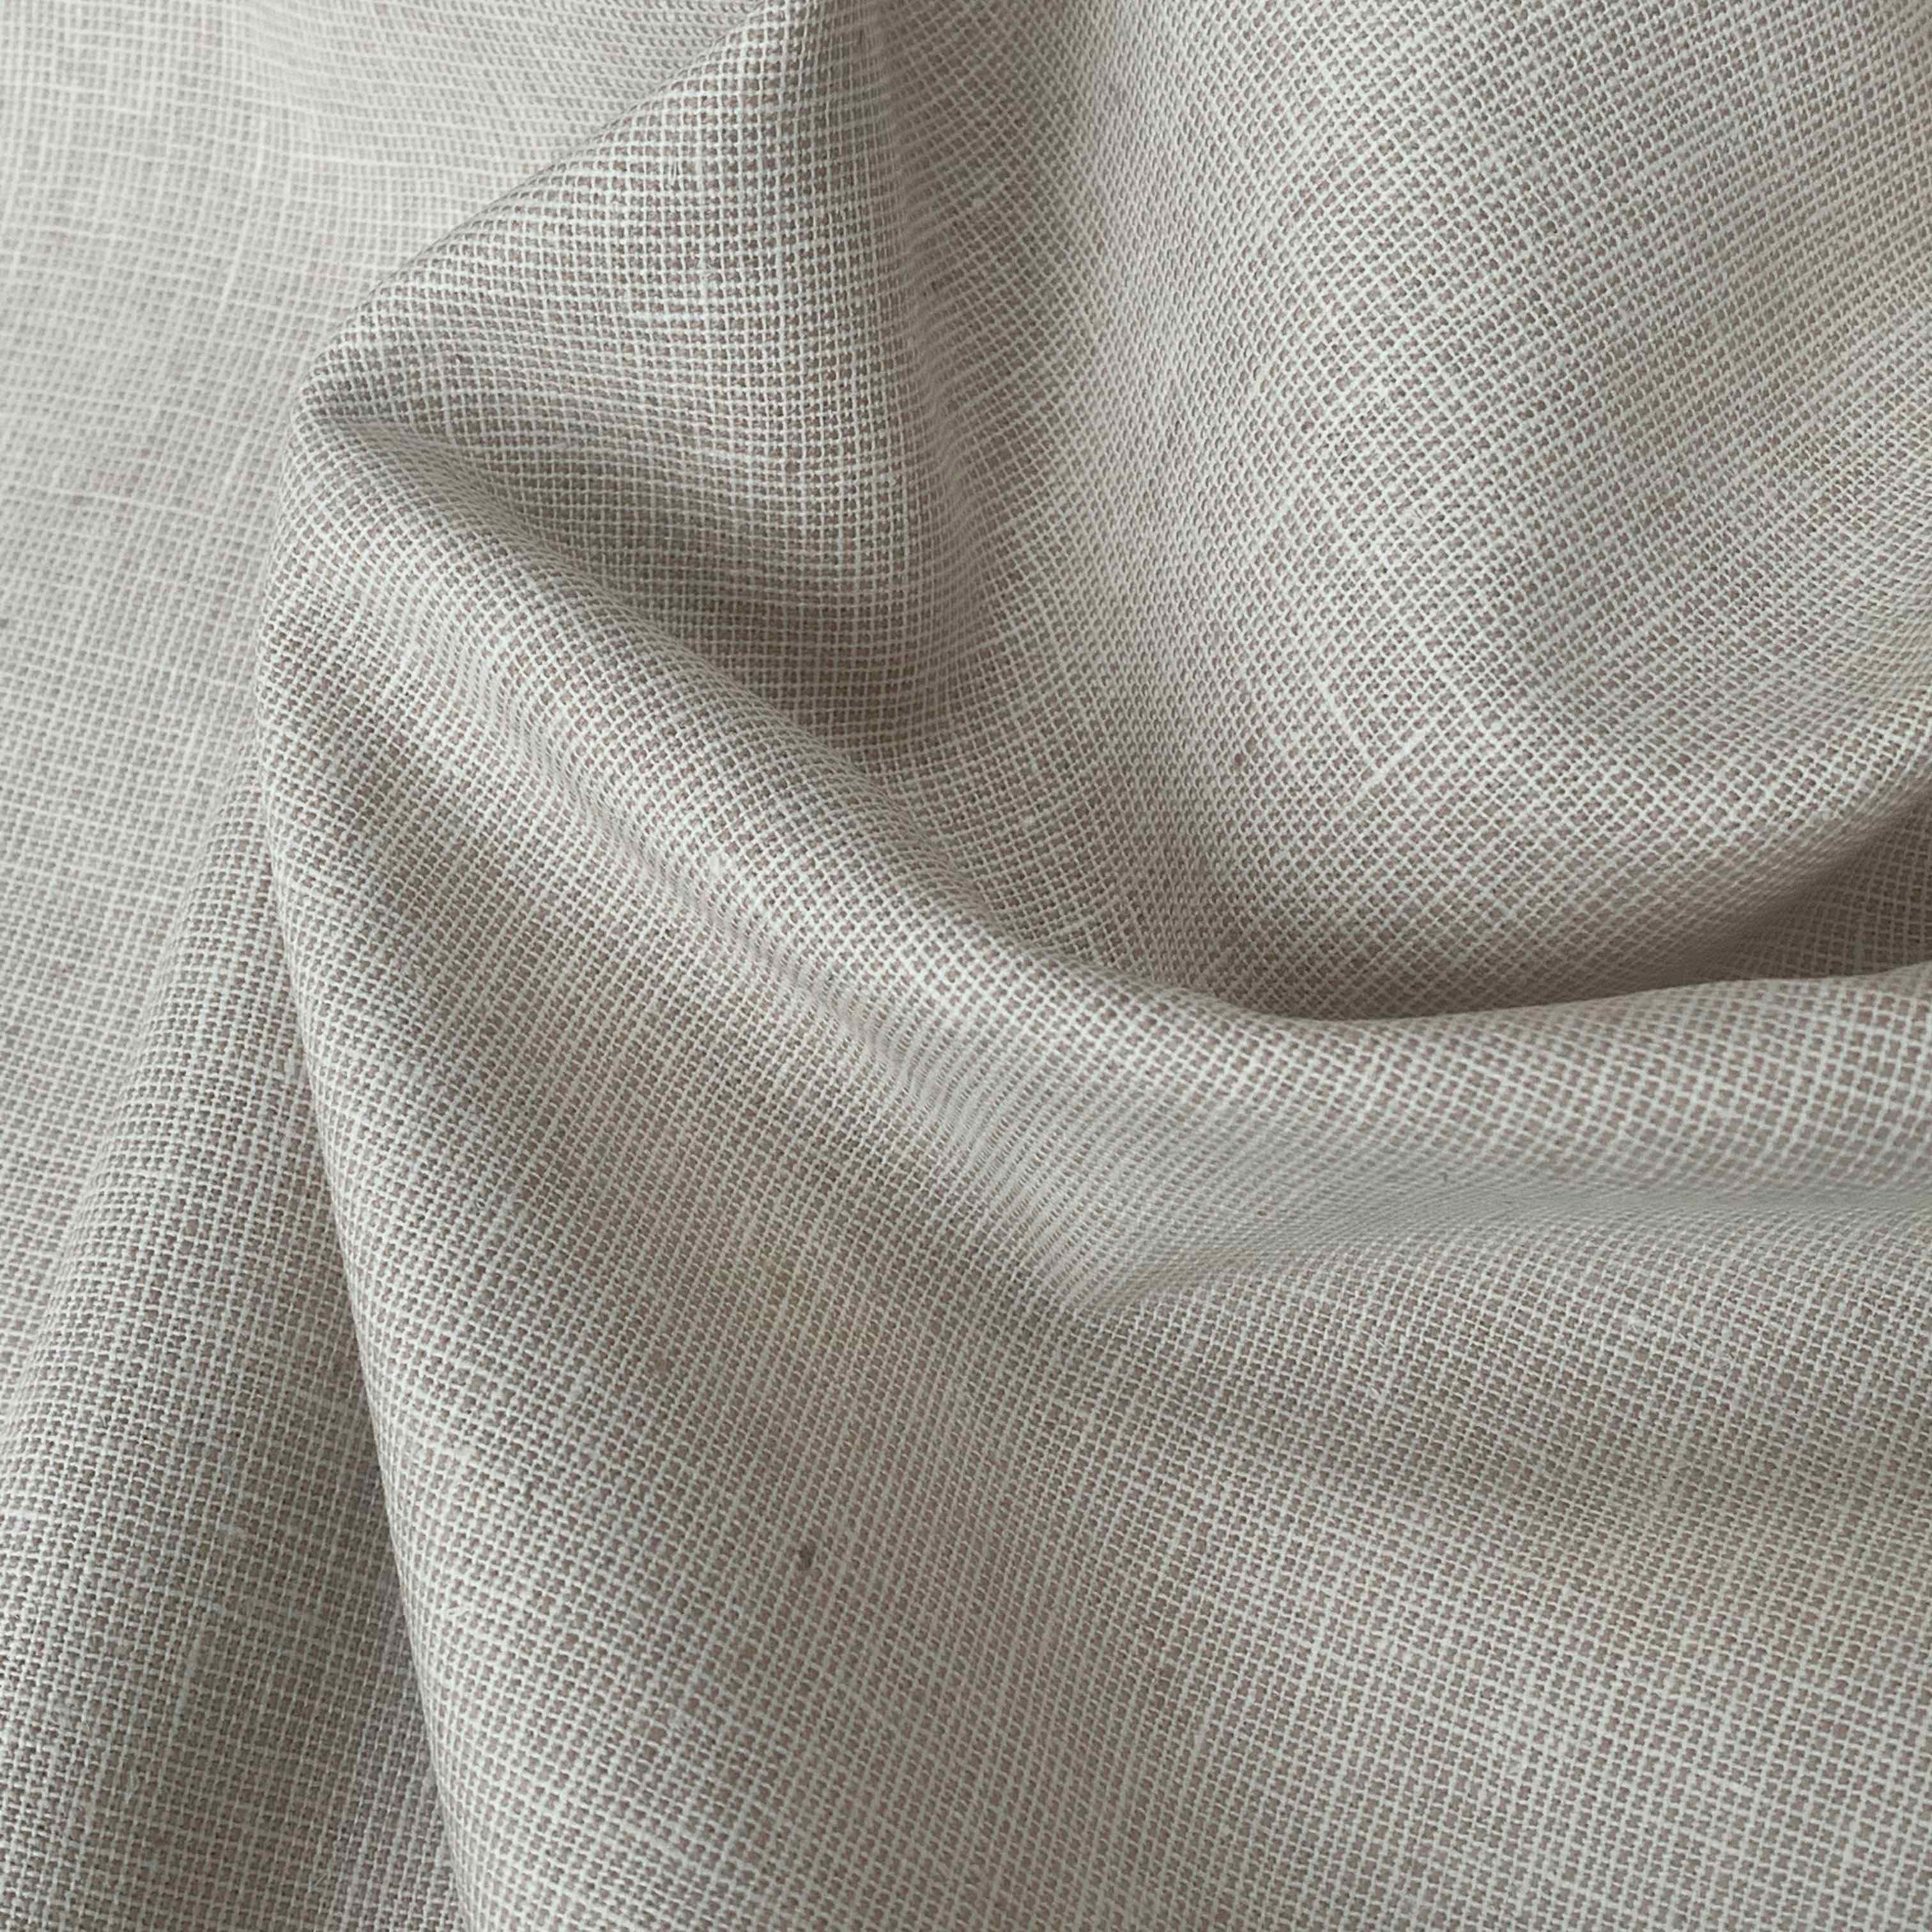 Robert Kaufman Yarn Dyed Homespun Essex Linen Fabric Natural